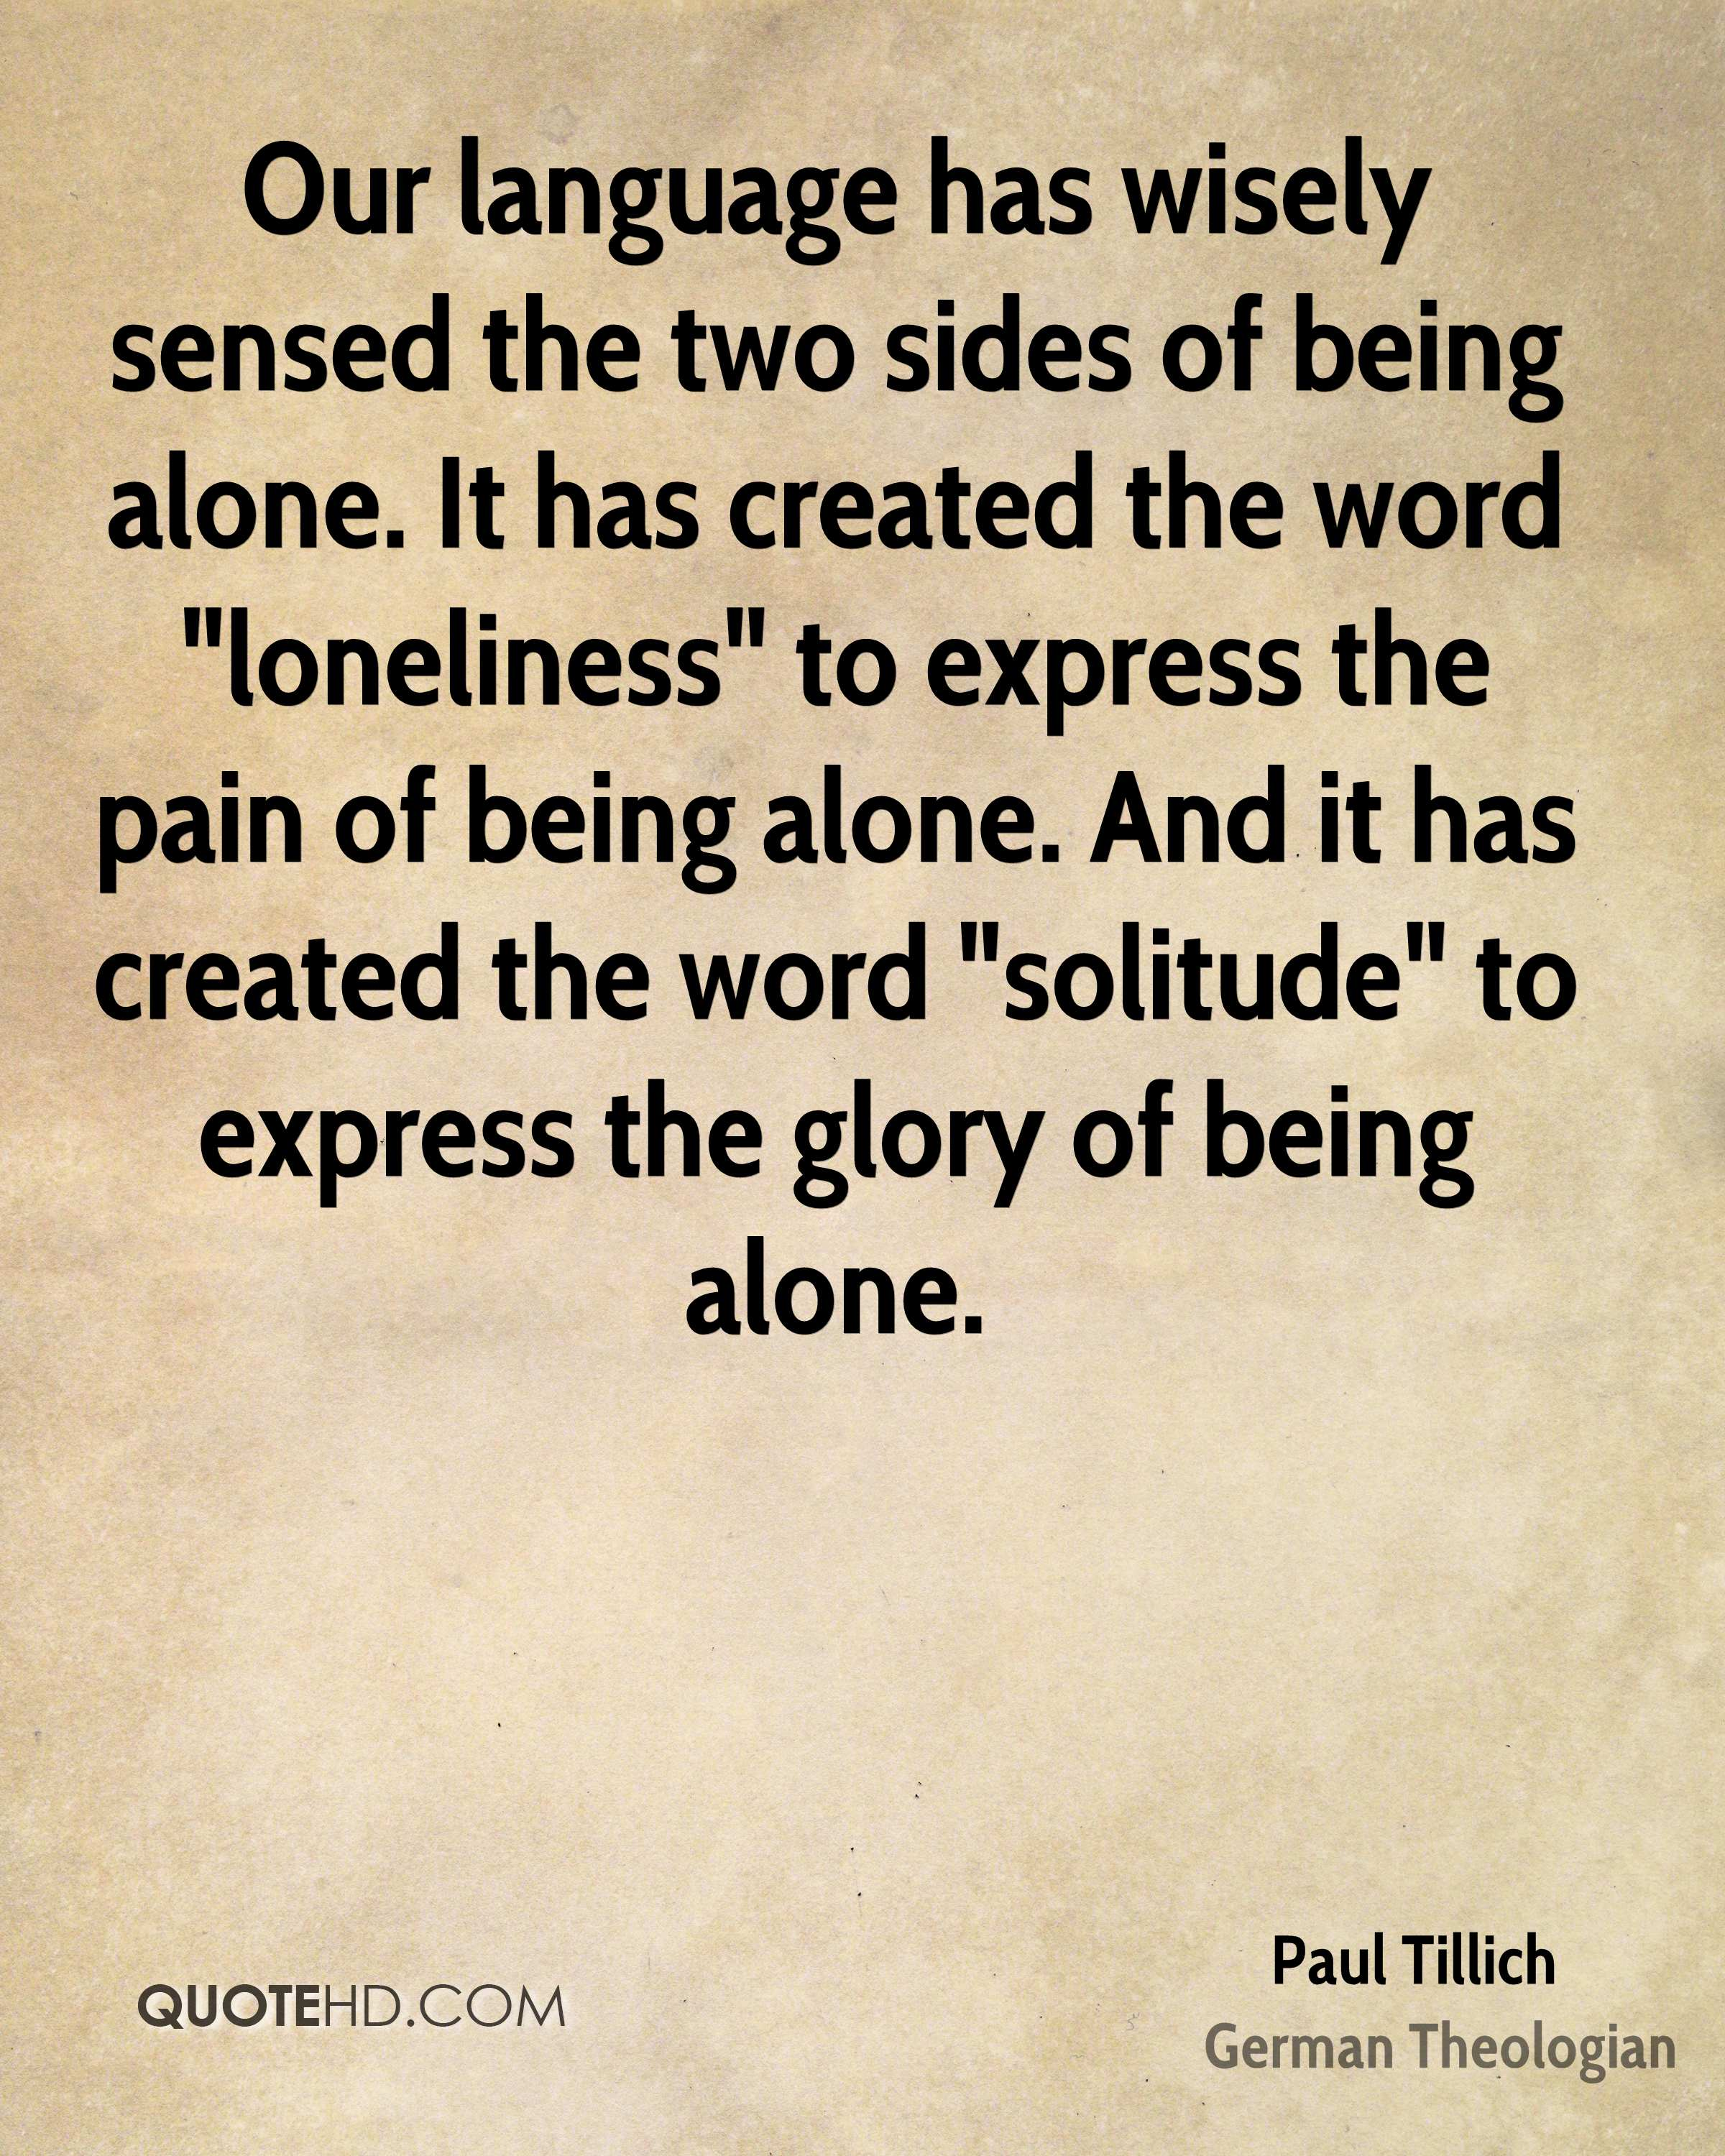 "Our language has wisely sensed the two sides of being alone. It has created the word ""loneliness"" to express the pain of being alone. And it has created the word ""solitude"" to express the glory of being alone."